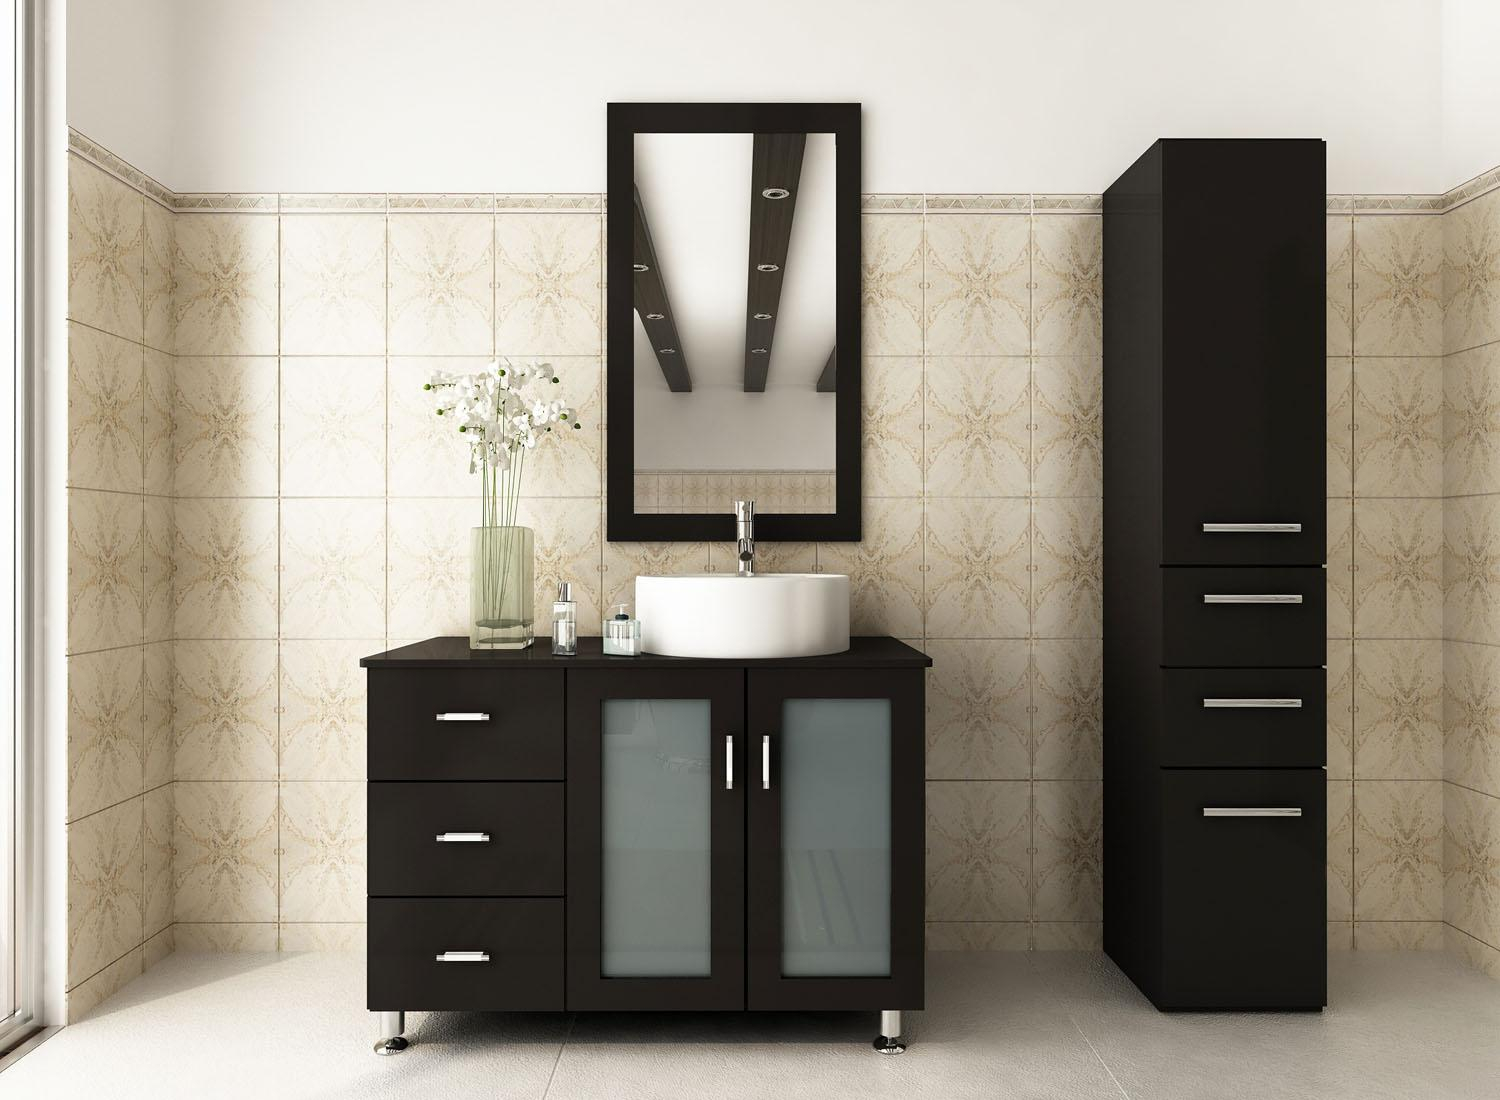 Cool Bathroom Vanities Phoenix Az - Home Design Ideas inside Bathroom Vanities San Antonio